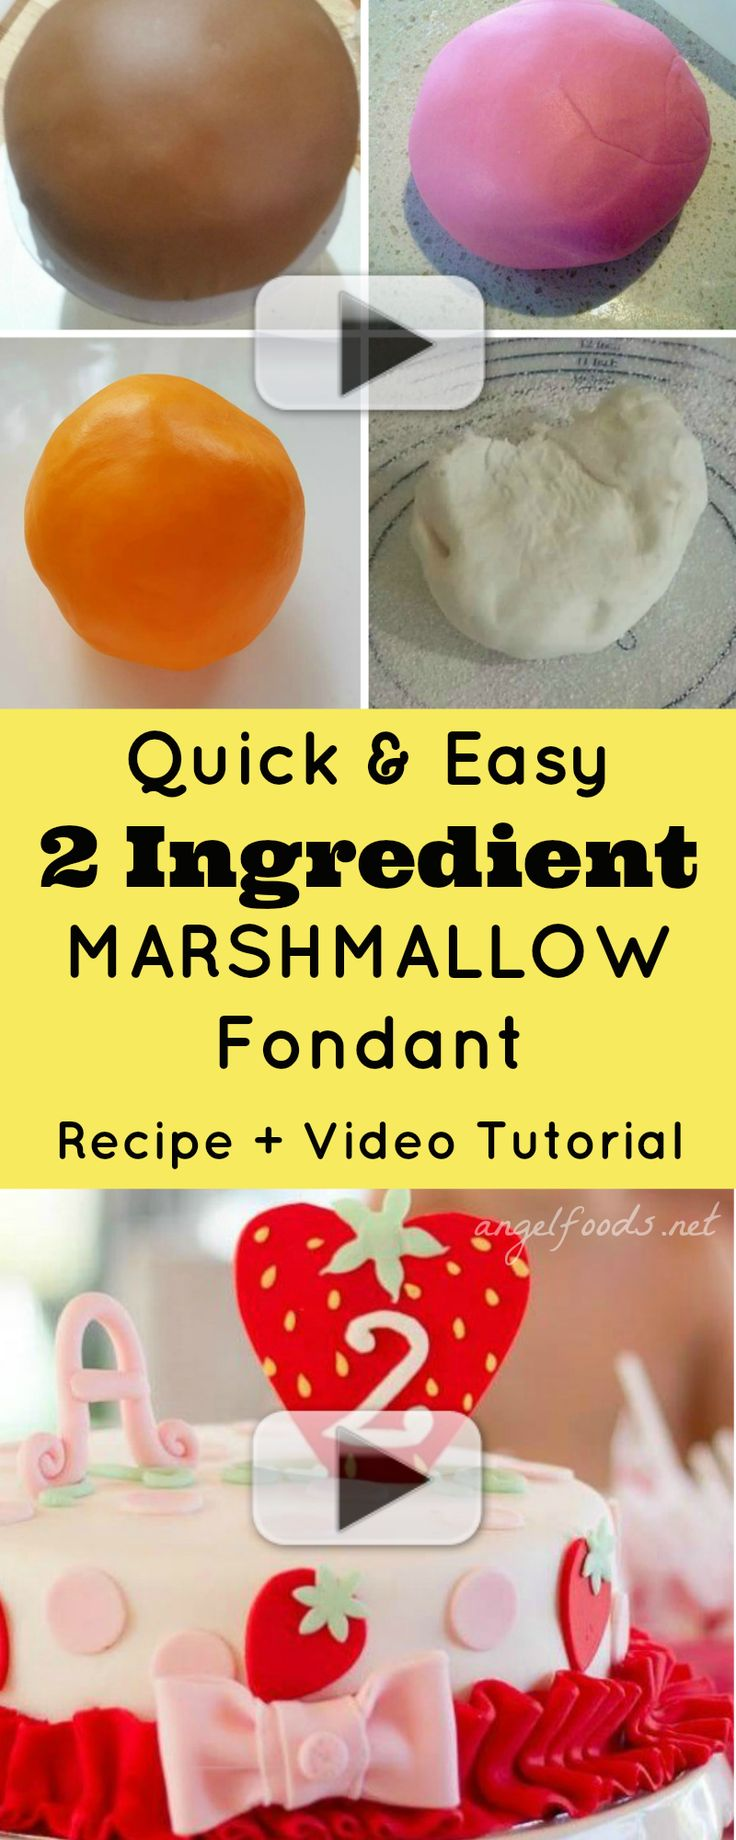 Quick and easy 2 ingredient marshmallow fondant recipe for Quick and easy cake recipes